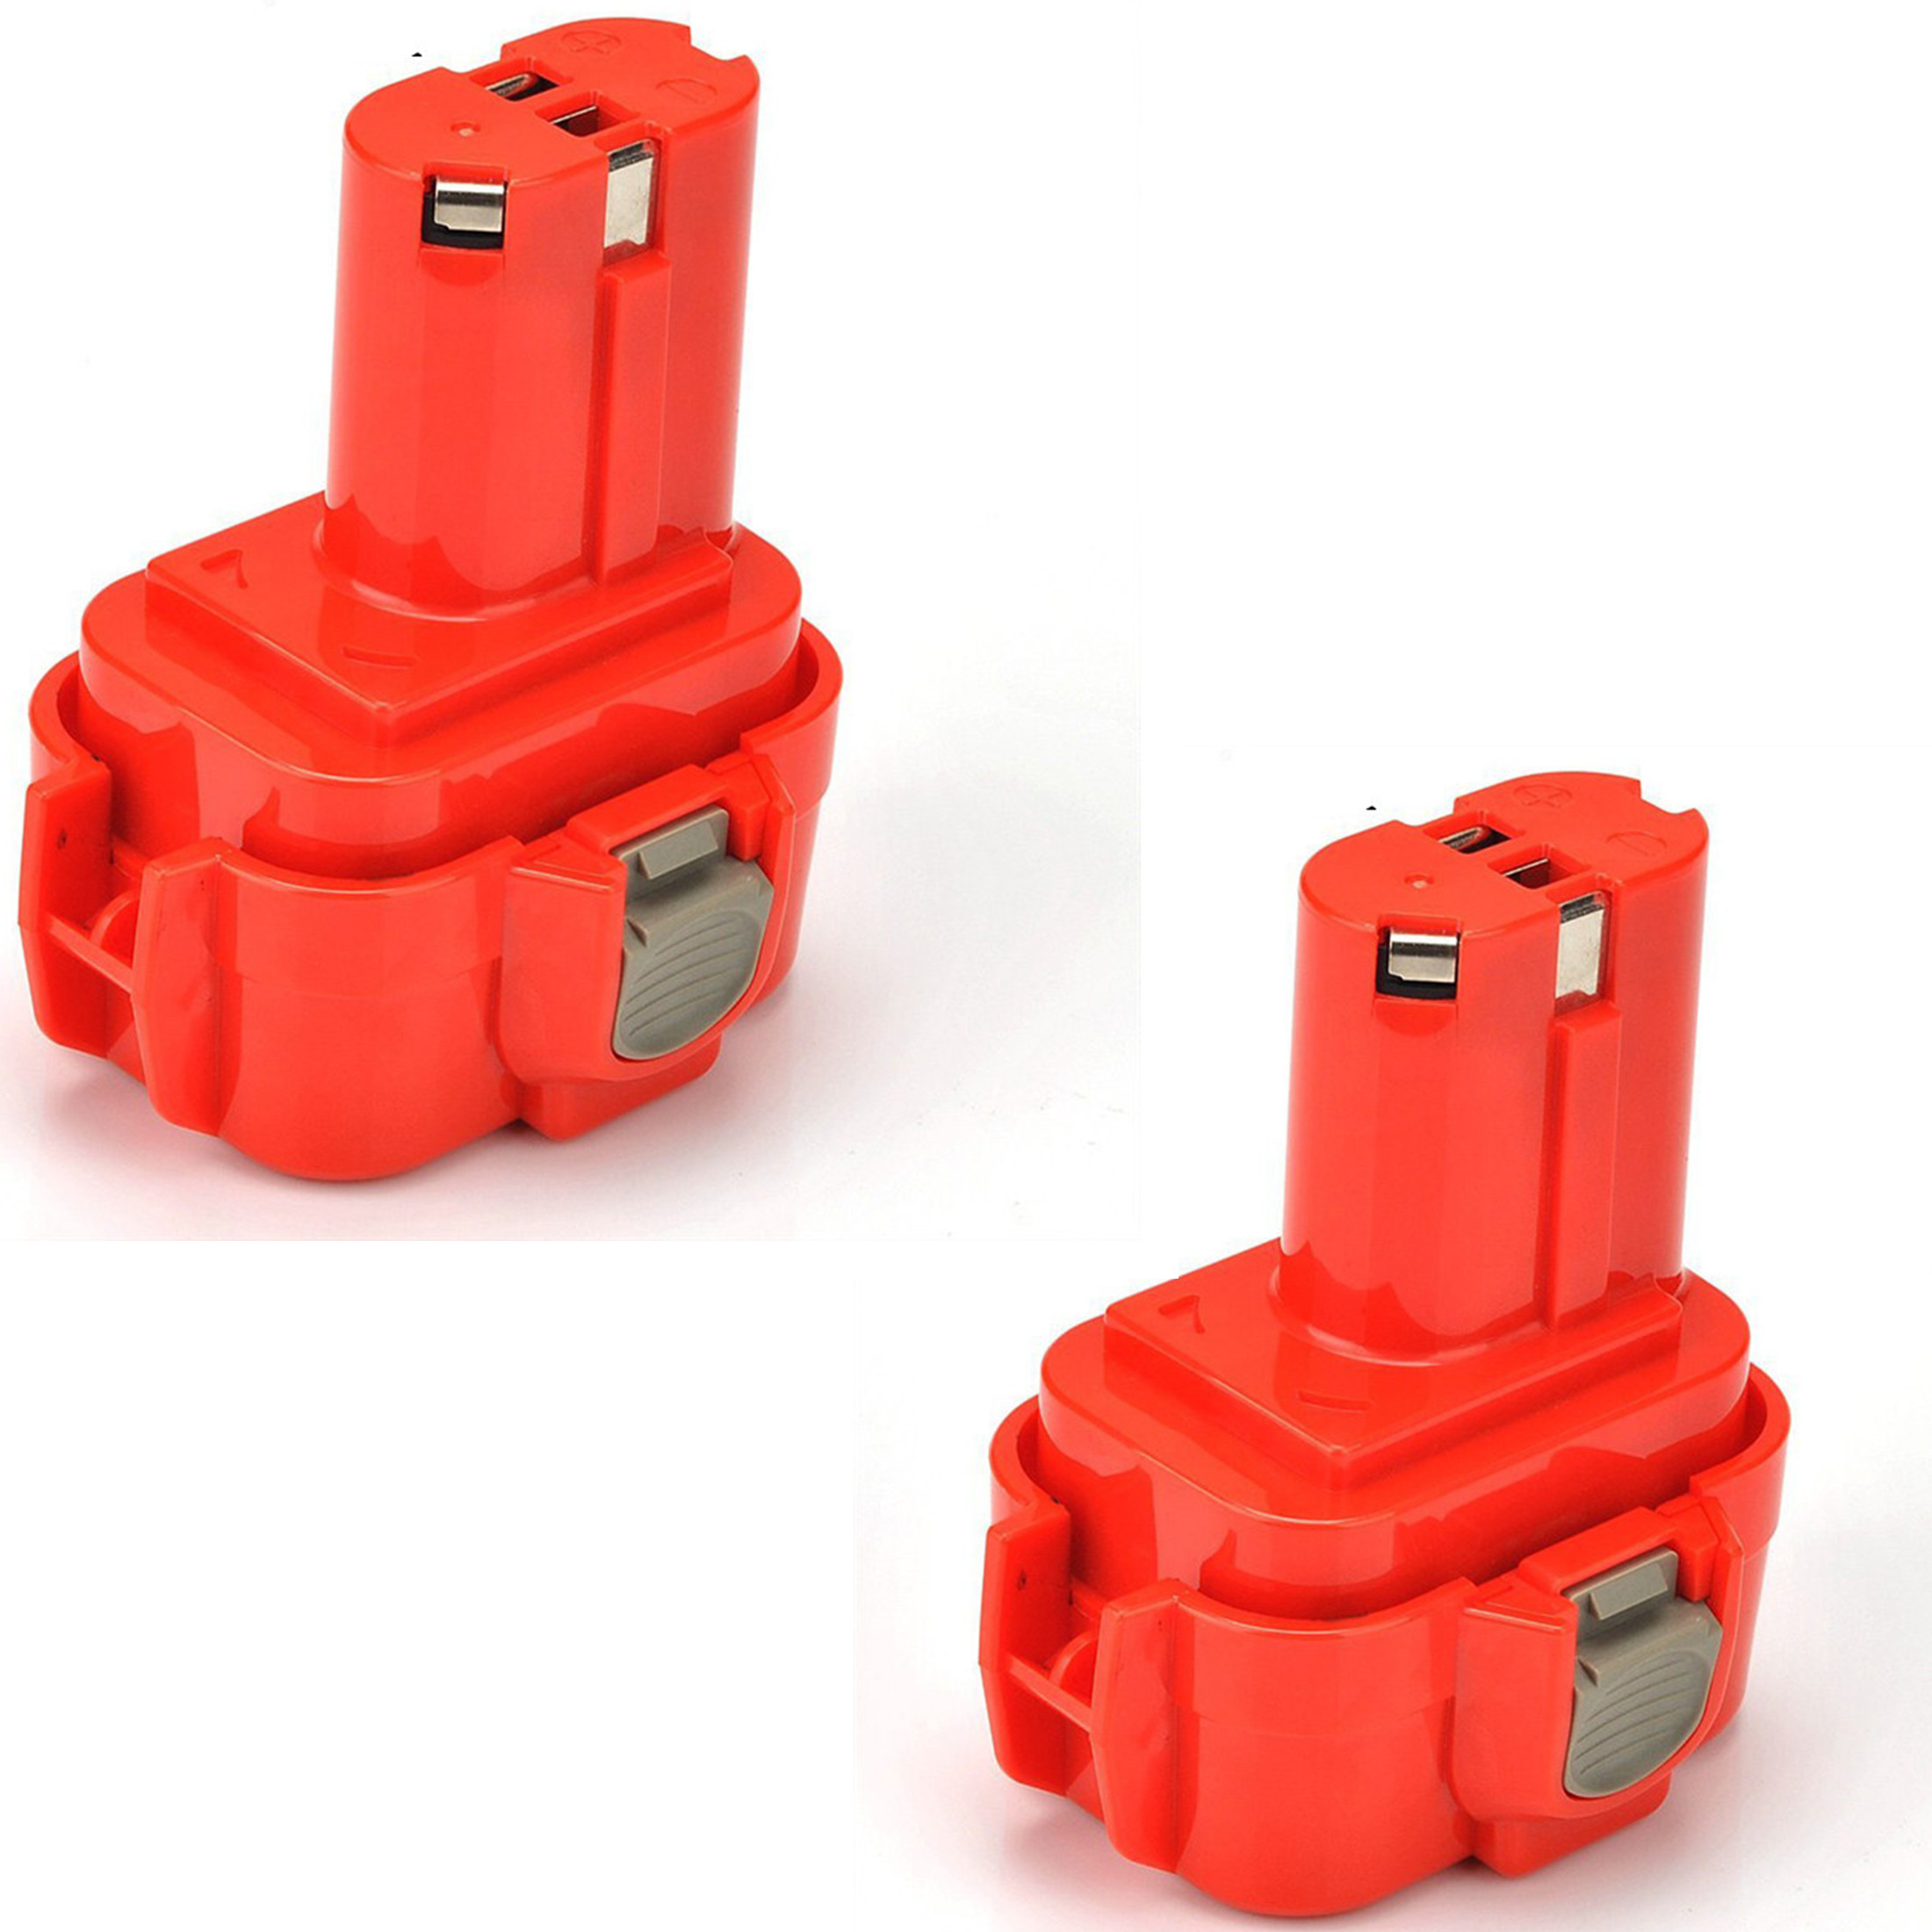 2pcs x <font><b>9.6V</b></font> Ni-MH rechargeable <font><b>battery</b></font> cell pack 3000mah for <font><b>makita</b></font> cordless Electric drill screwdriver 6207D 6222D 6226D 6260D image